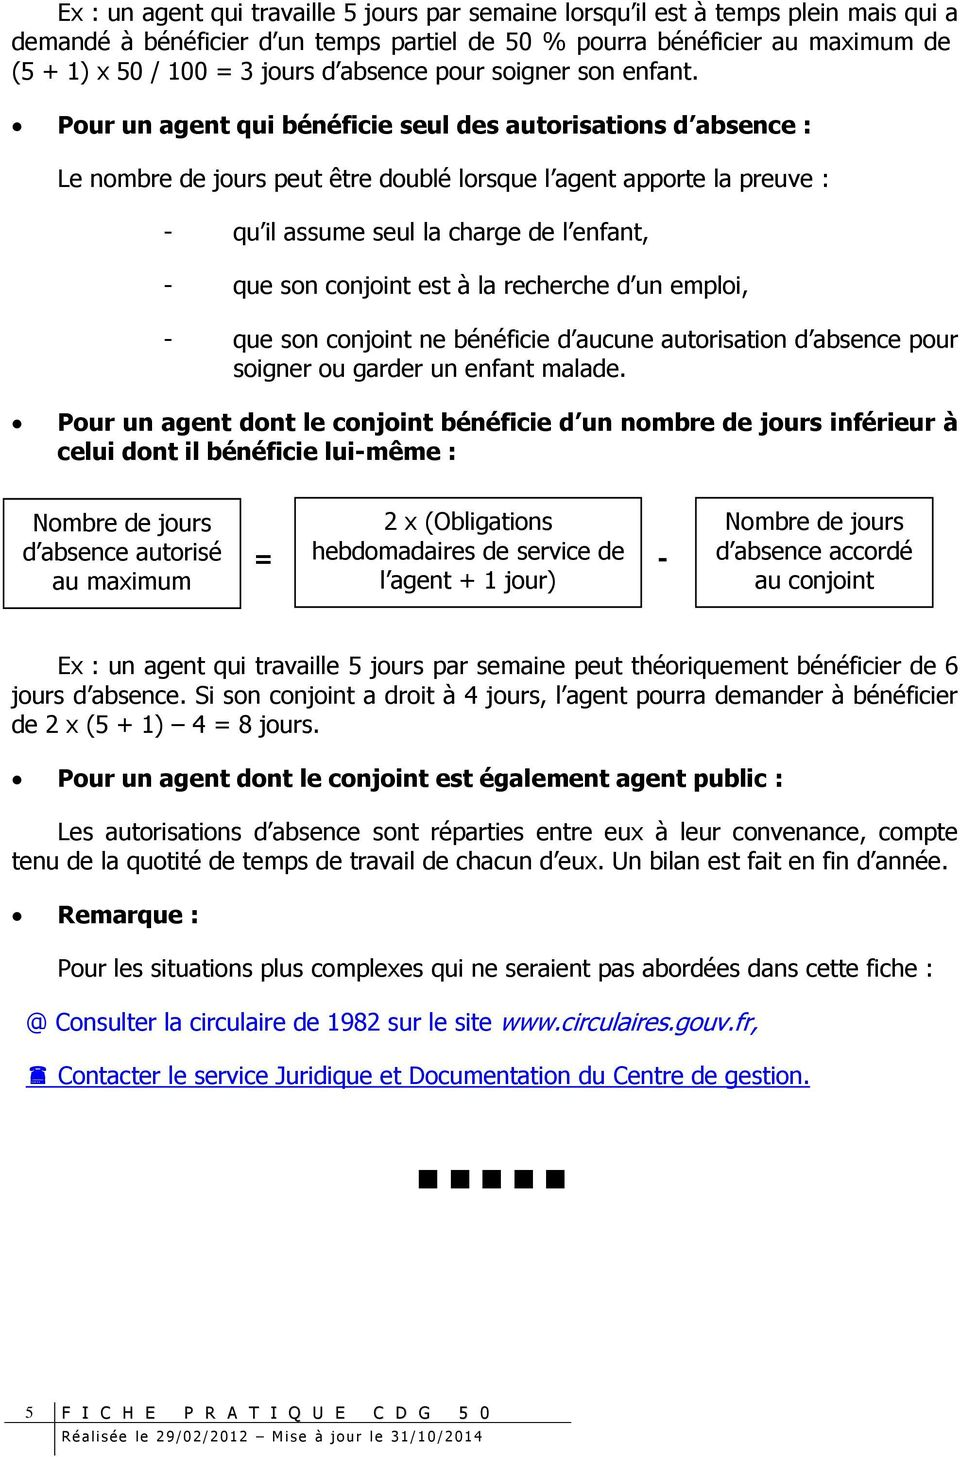 Autorisations Speciales D Absence Pour Evenements Familiaux Pdf